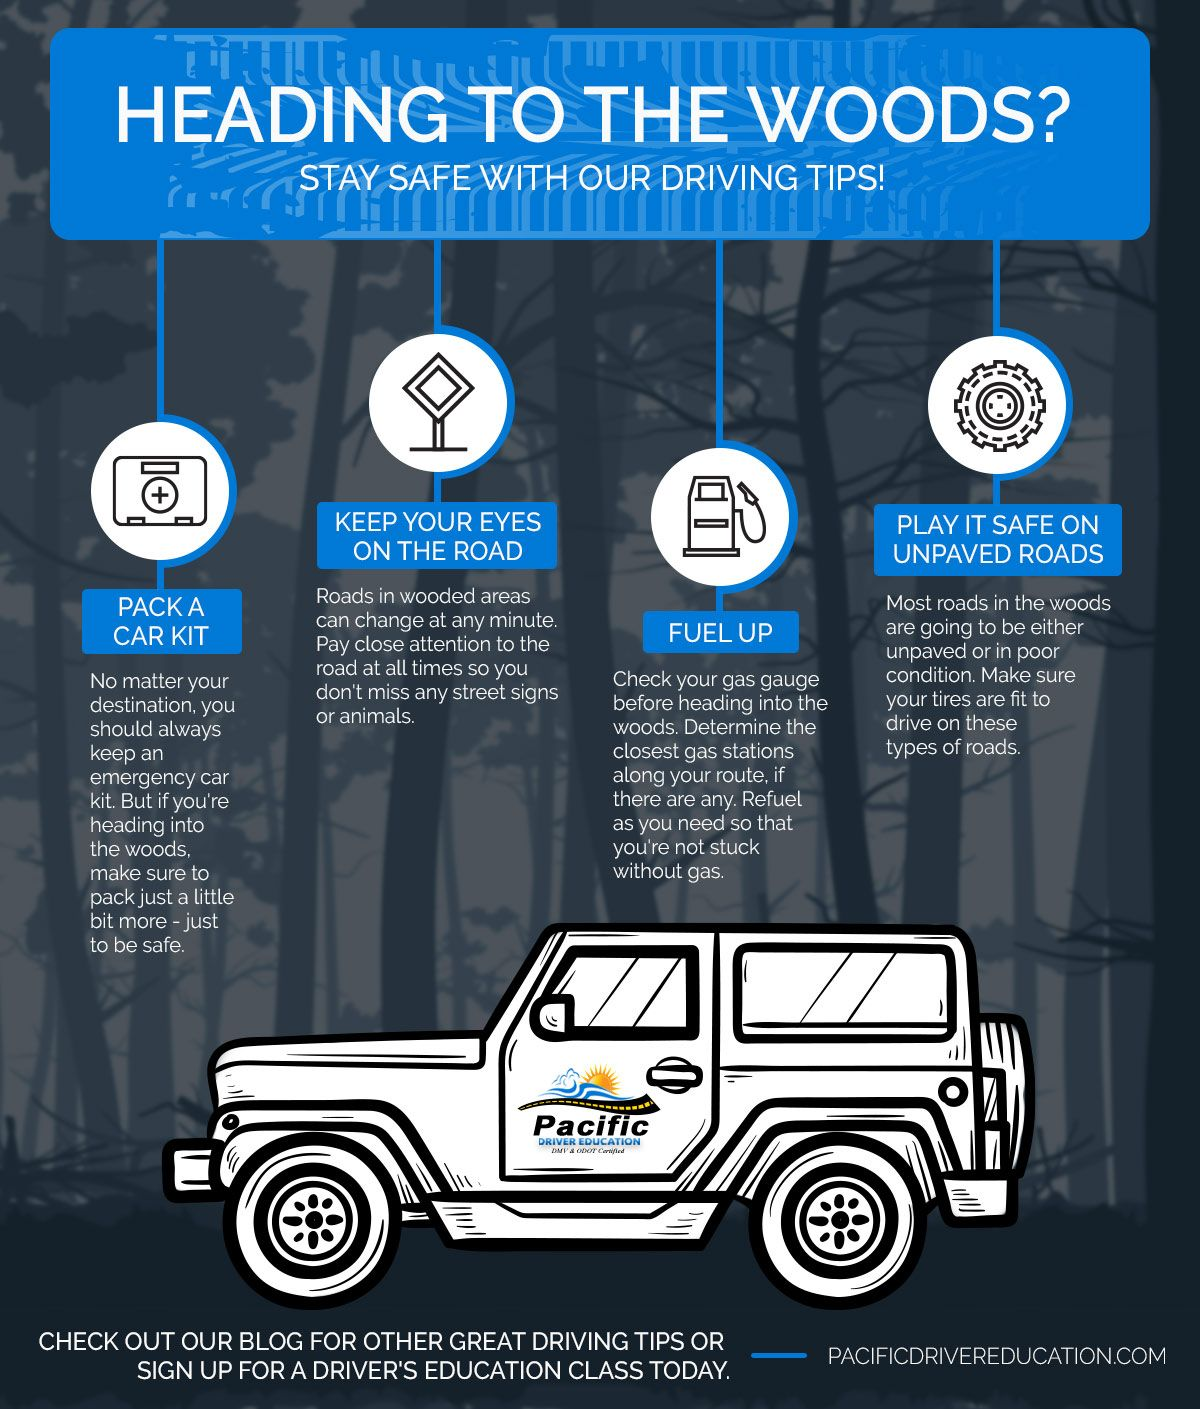 Saftey-Tips-Driving-in-Woods-5e7cd6a30d188.jpg